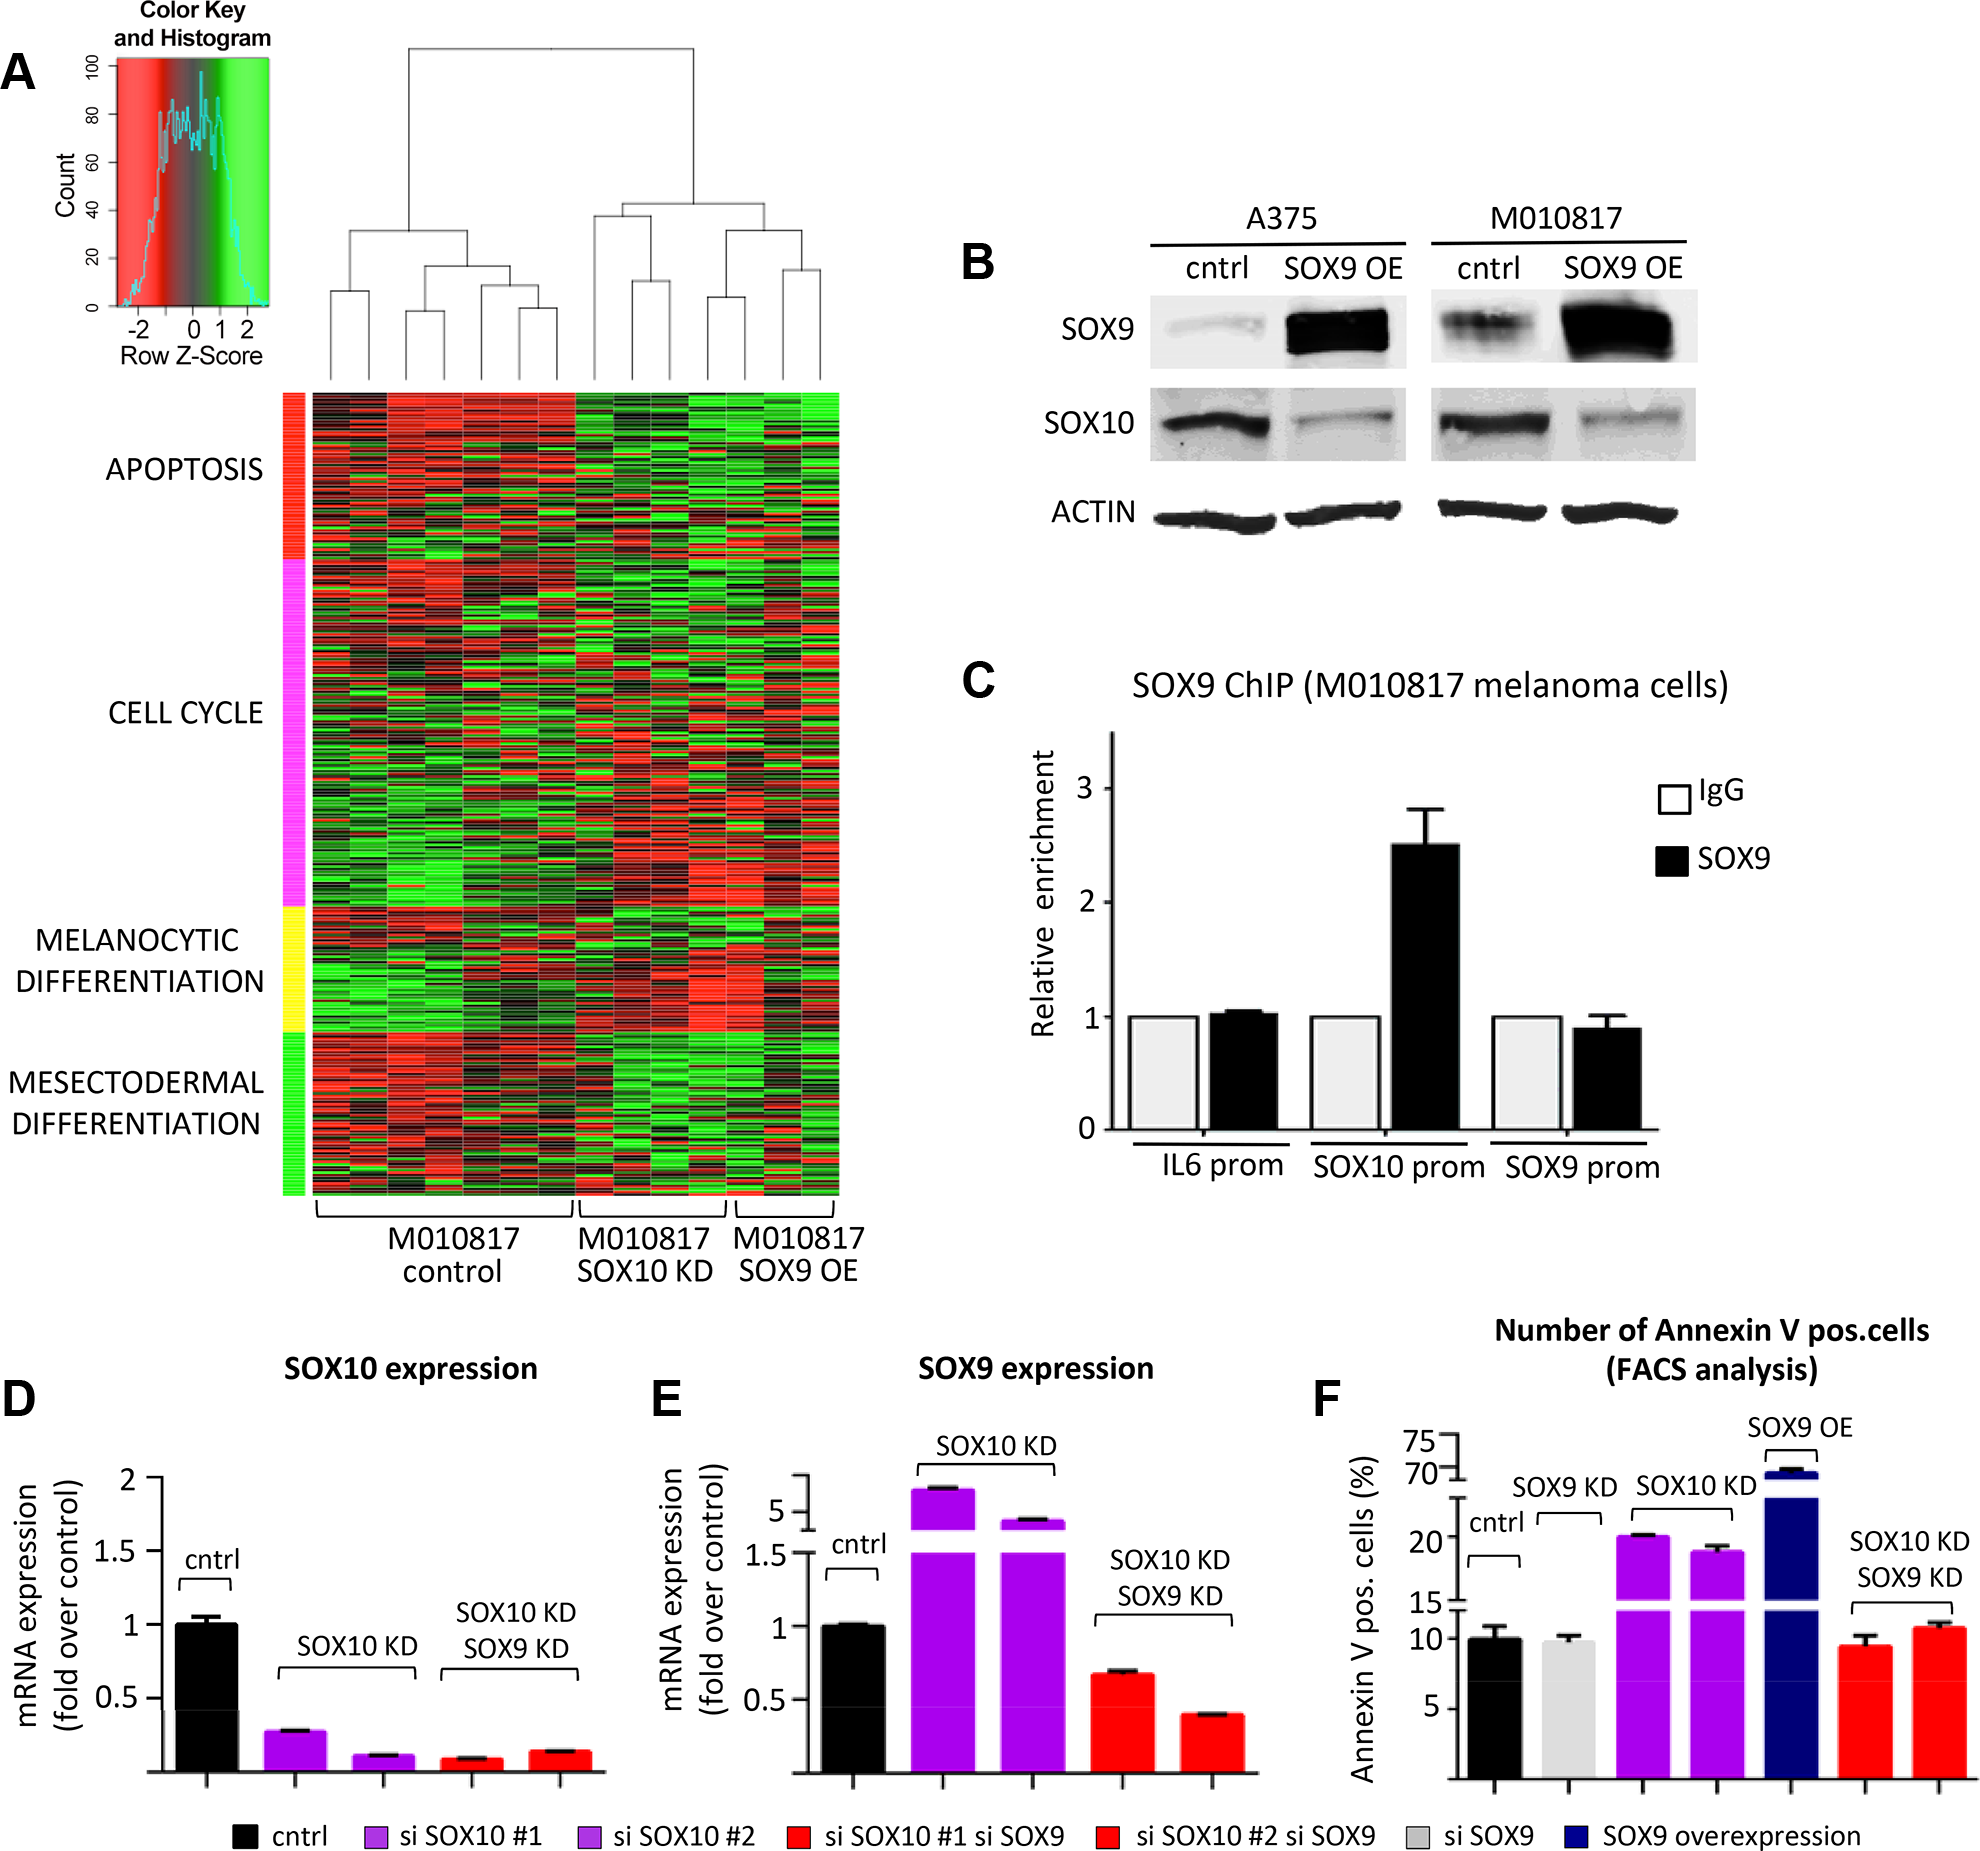 Experimental suppression of SOX9 expression rescues the effects of SOX10 deregulation in human melanoma cells.